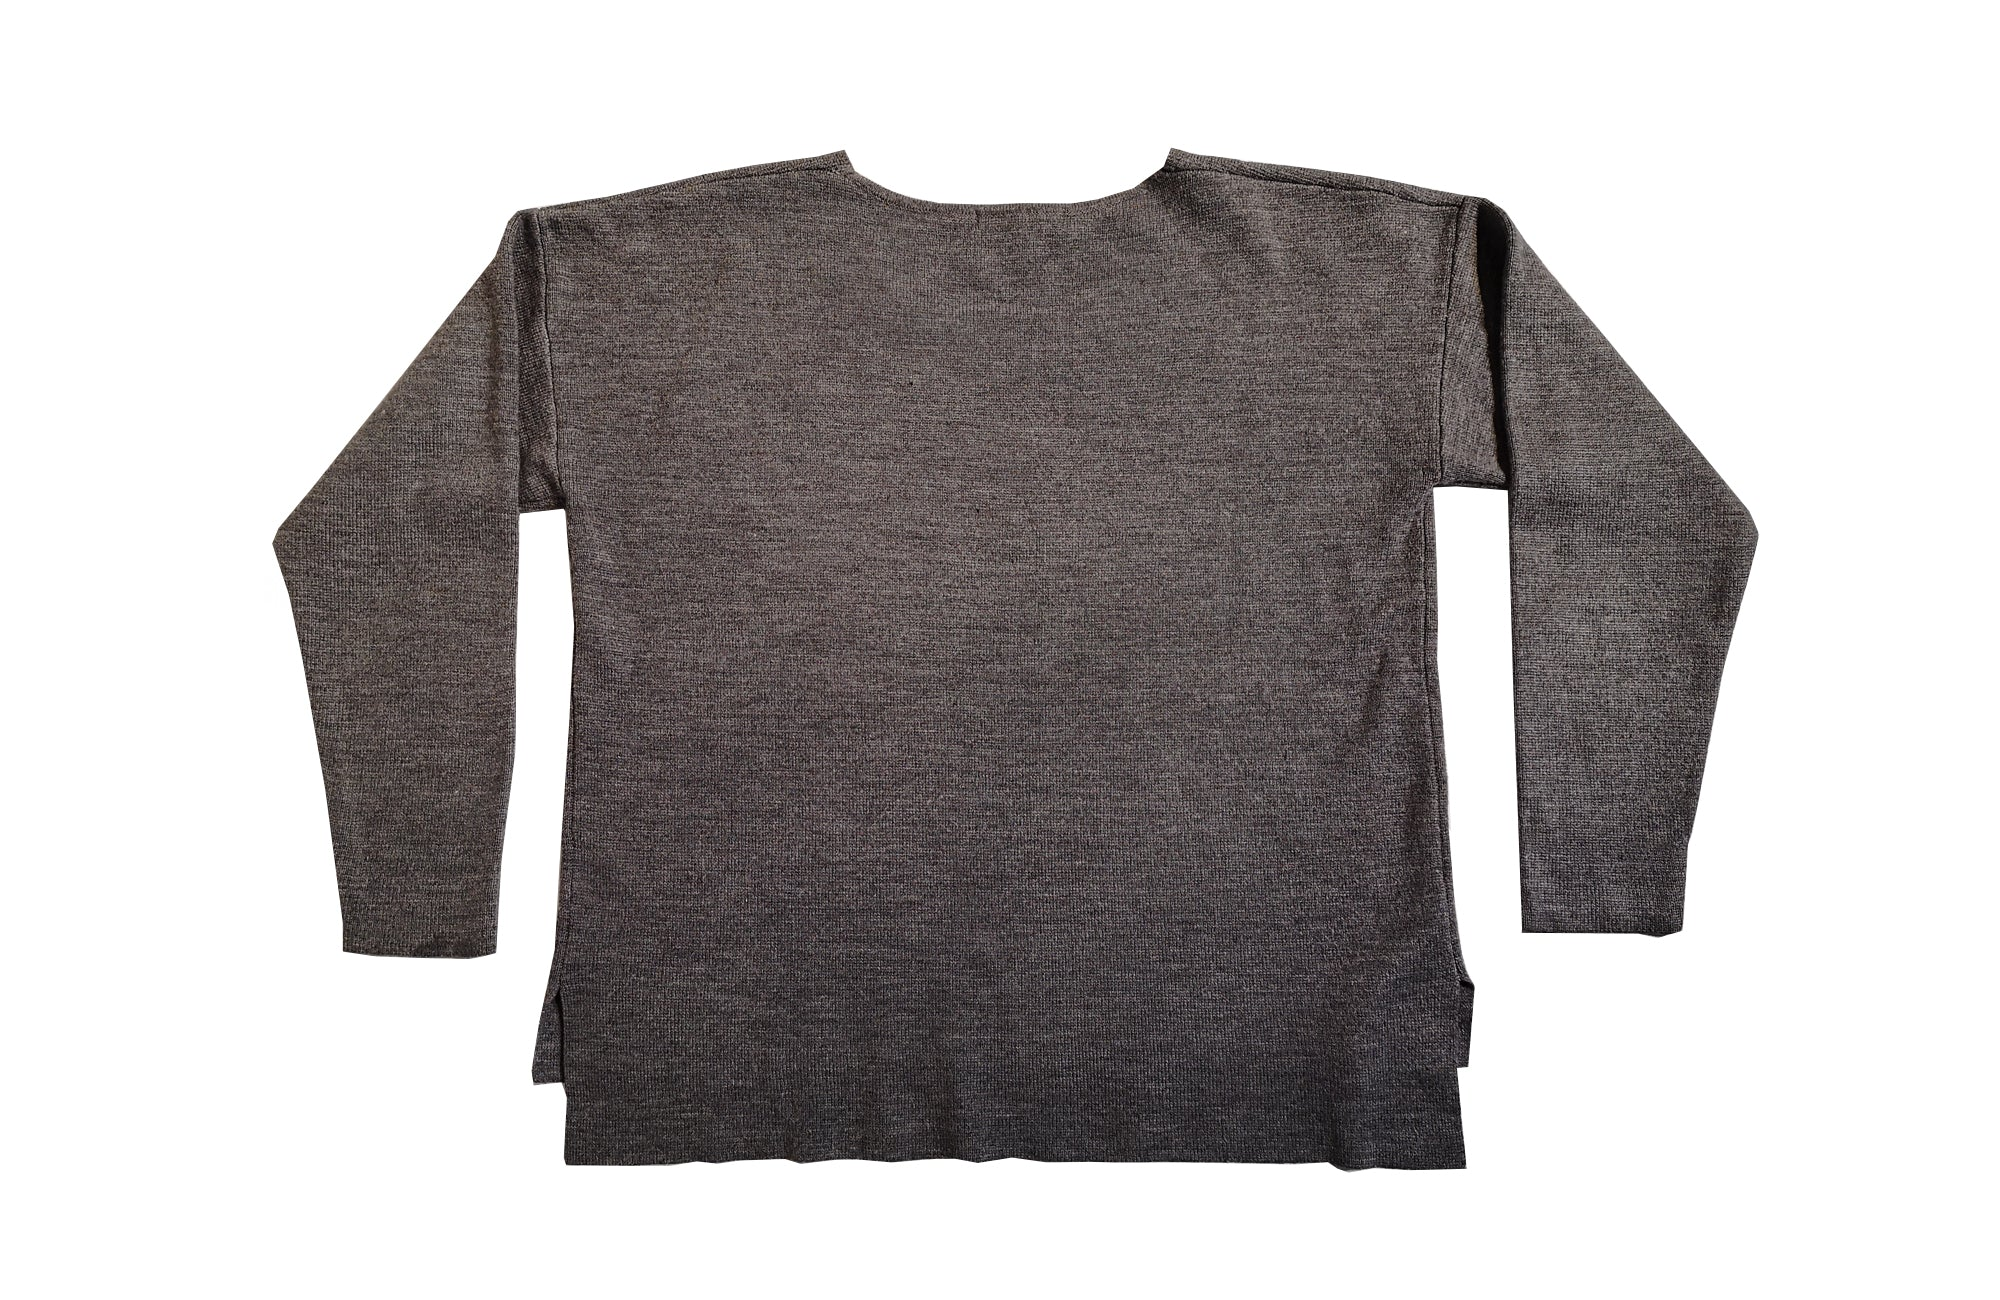 Lowrys Farm Grey Sweater(M)